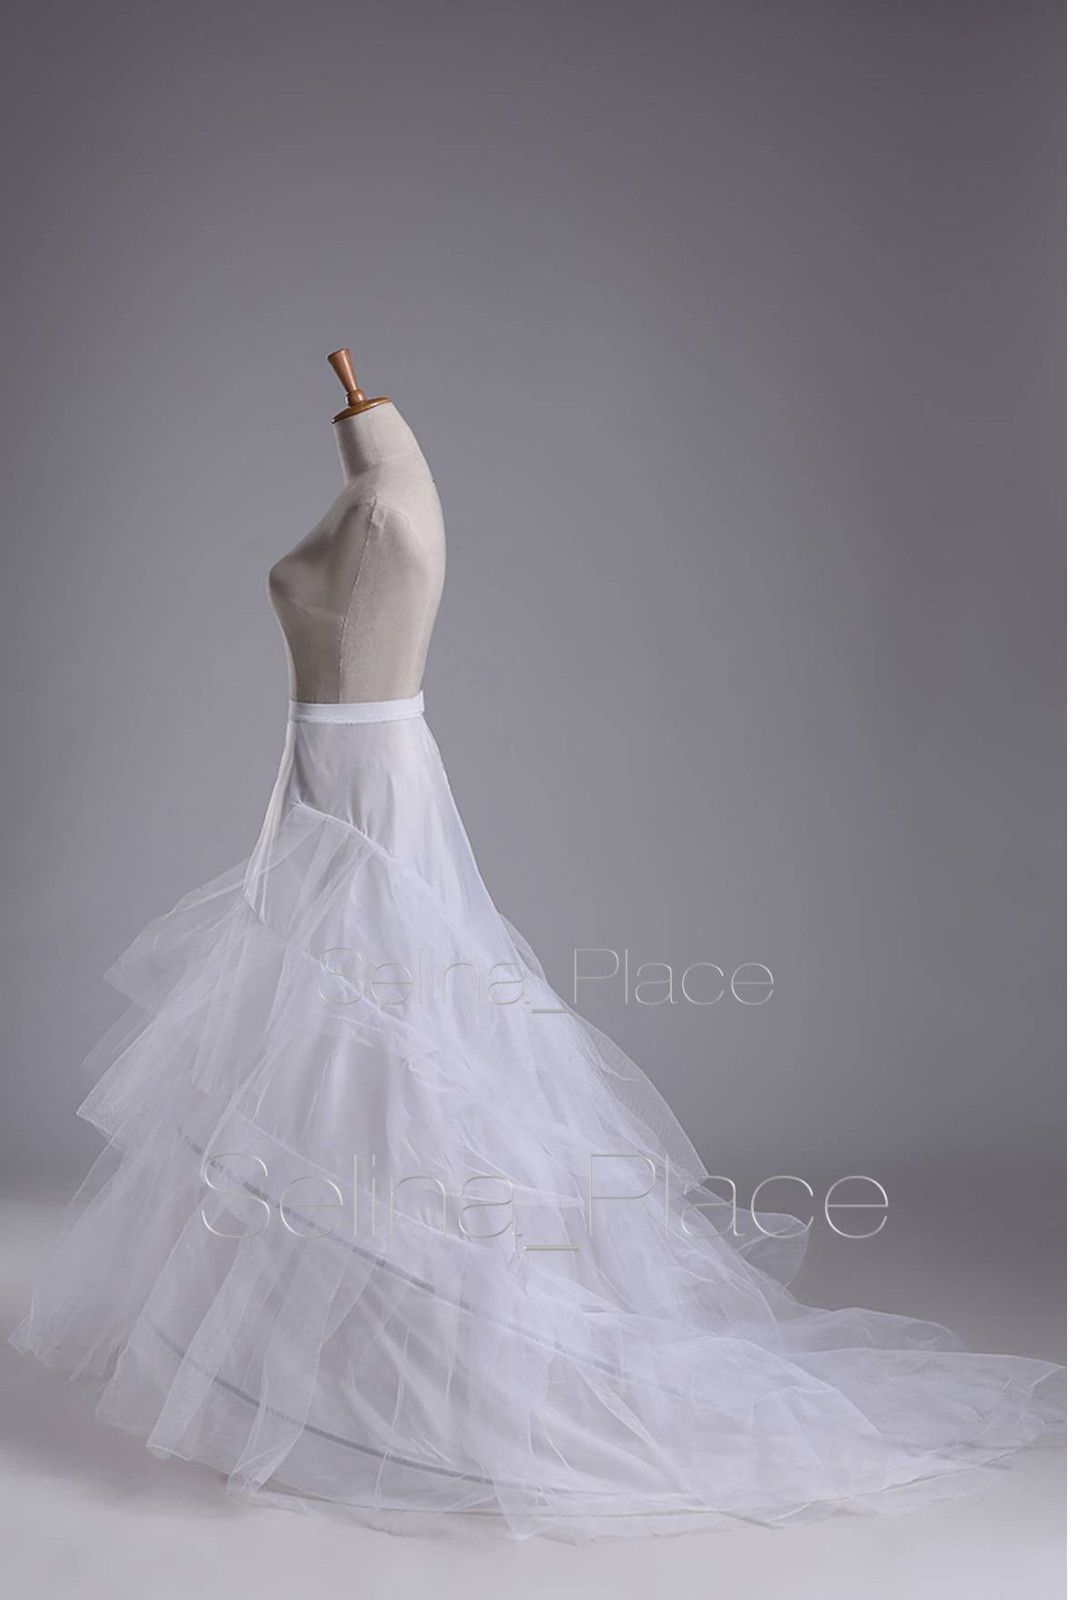 Petticoat for wedding dress  White  Hoop Train Wedding Dress Bridal Gown Crinoline Petticoat